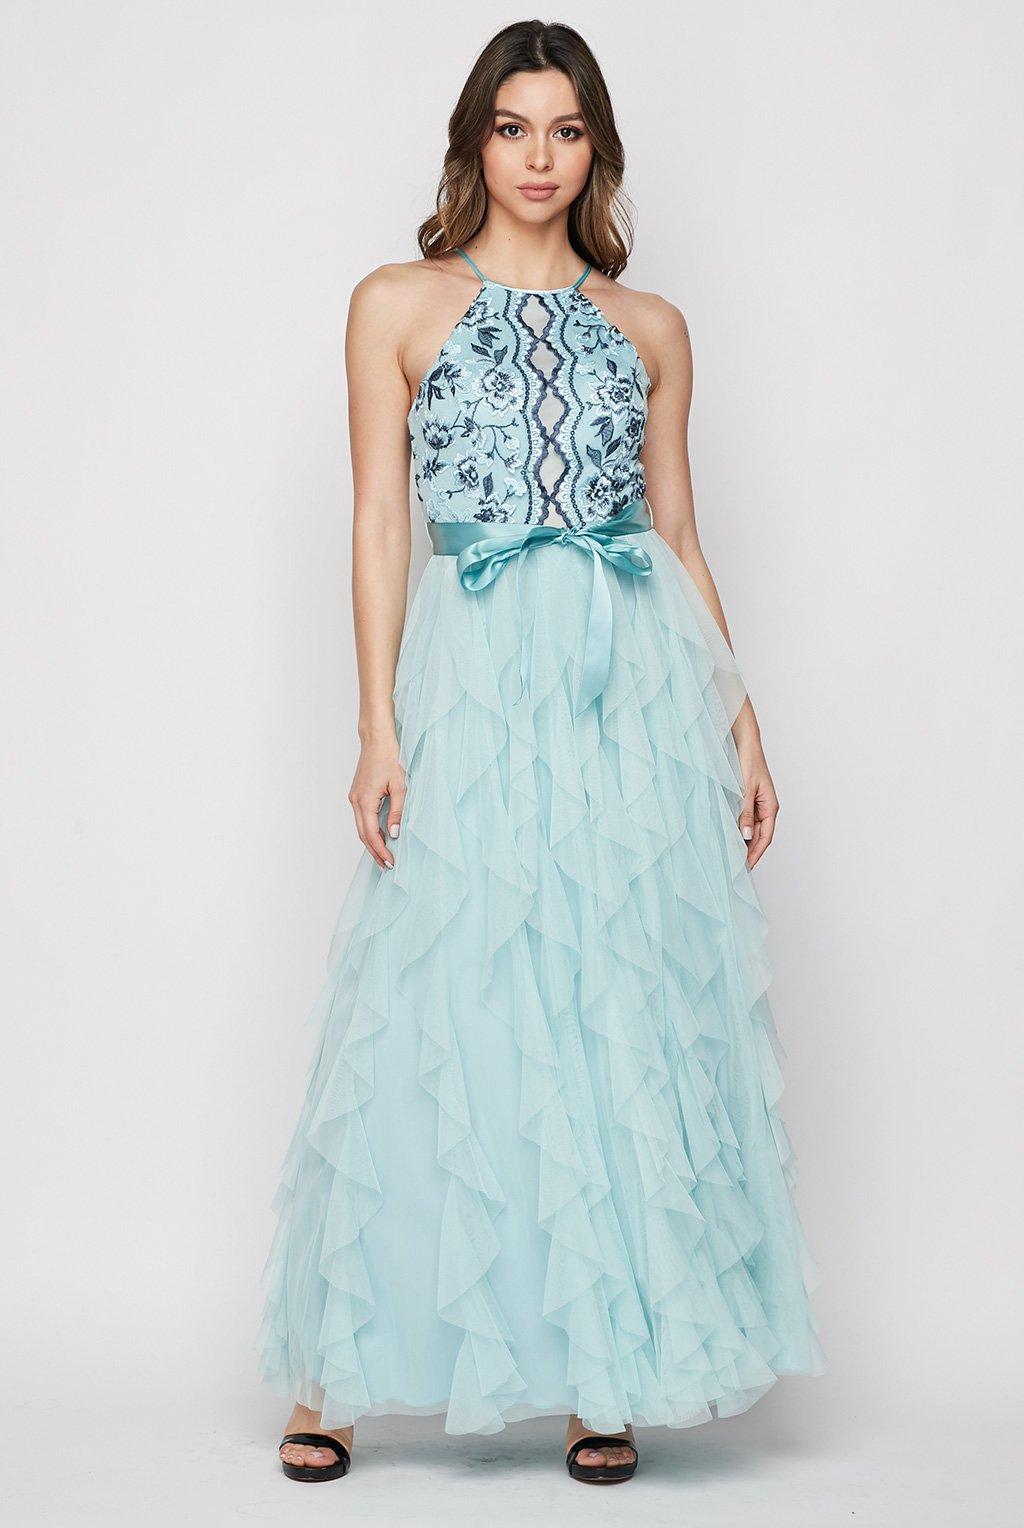 Teeze Me | Embroidered Lace With Corscrew Ruffle Mesh Gown | Teal